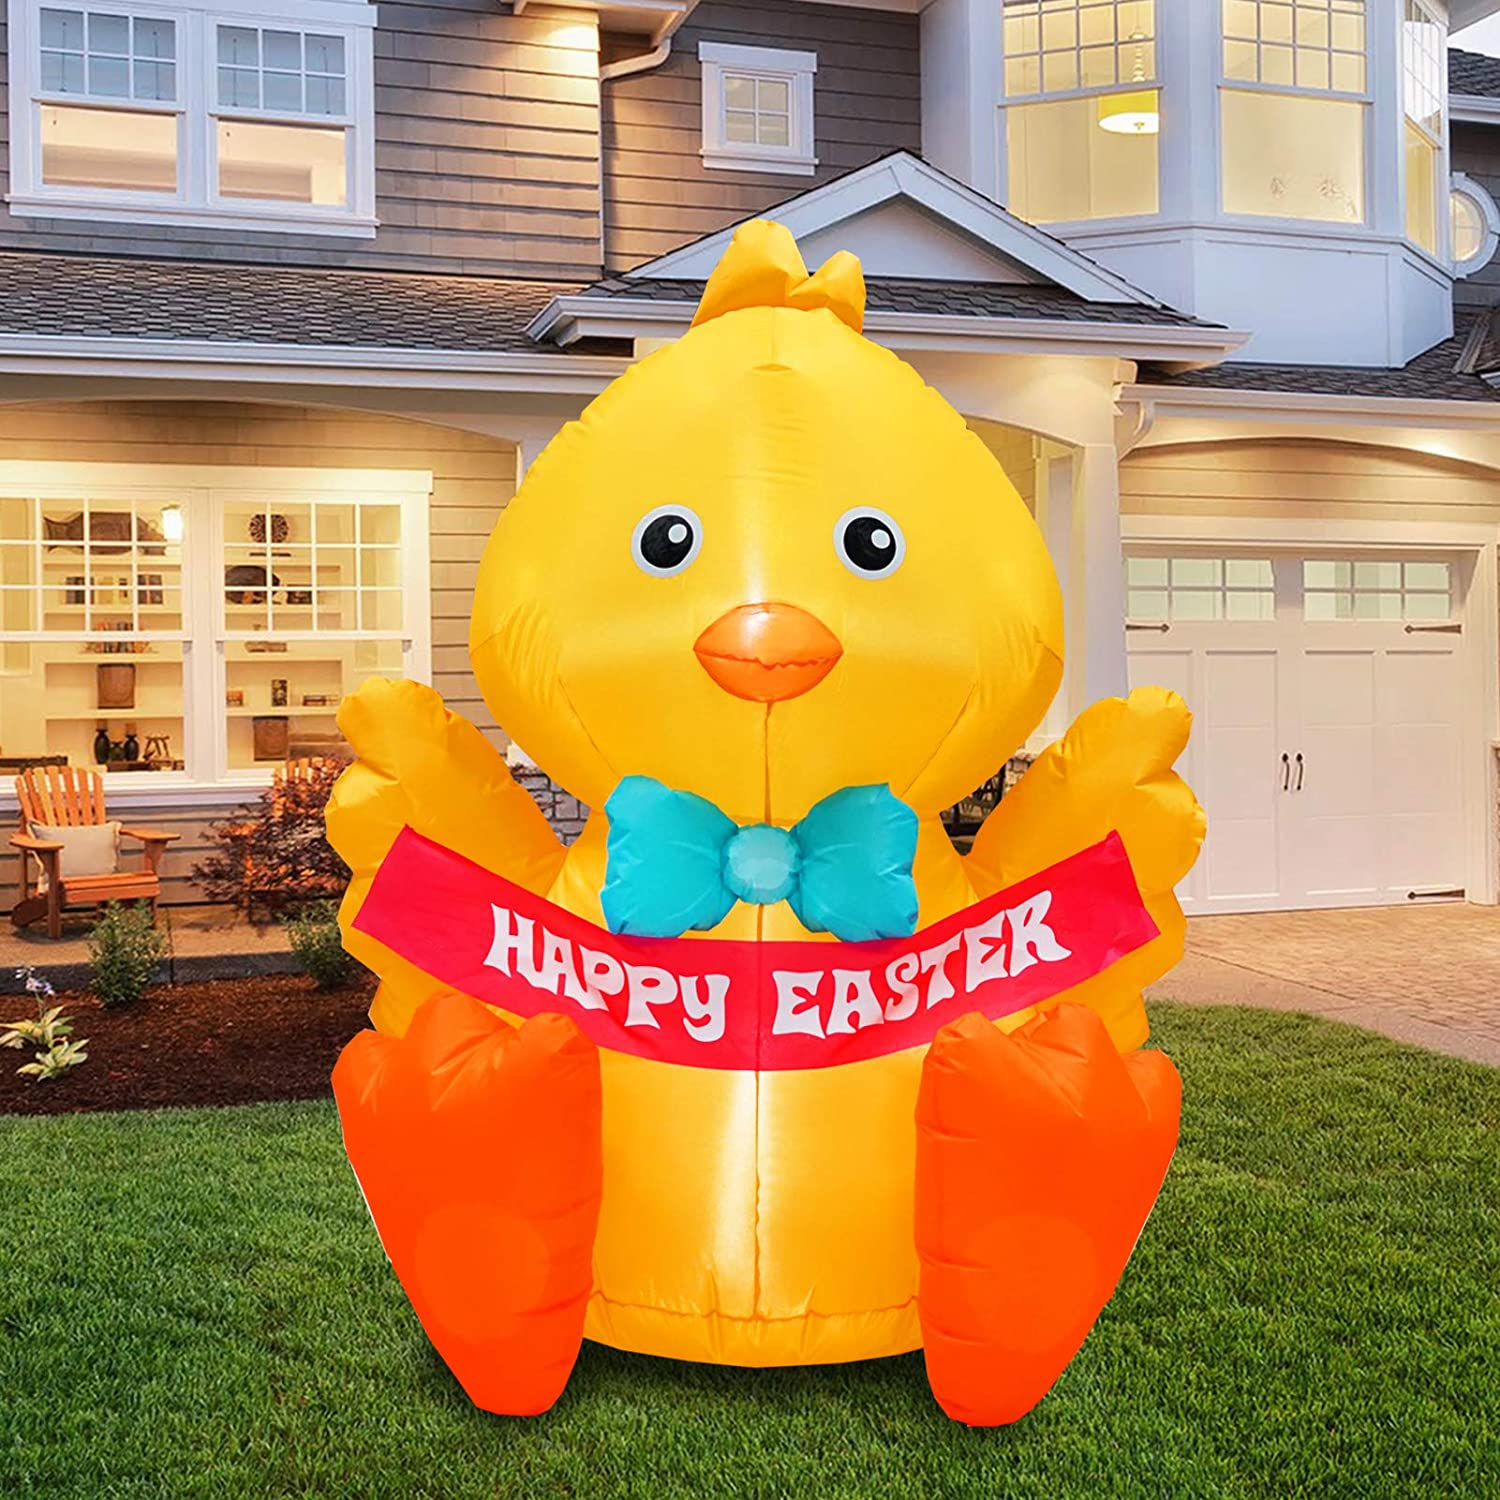 inslife 4 Ft Inflatable Baby Chick Lighted Easter Decoration for Home Yard Lawn Garden Indoor Outdoor